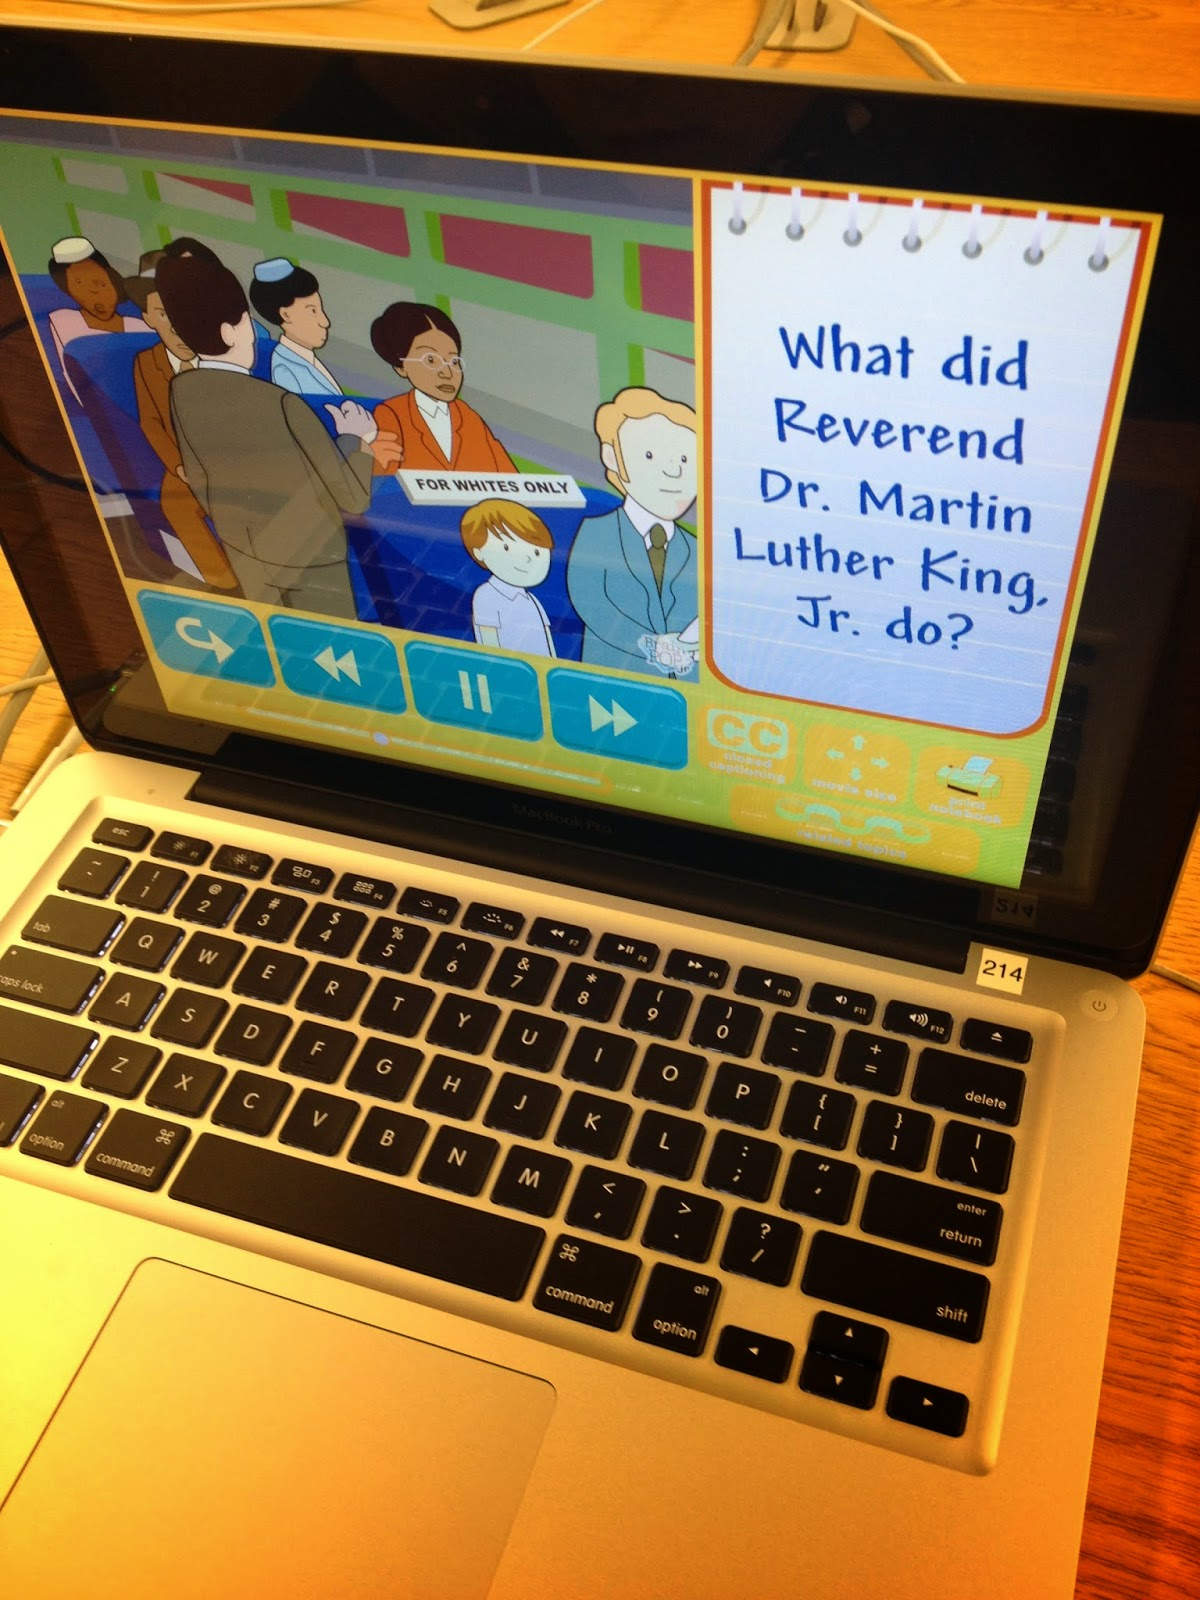 Uncategorized Brainpop Mlk suther and stars martin luther king jr one of the ways we celebrated was by watching a video about his life on brainpop children really enjoyed video